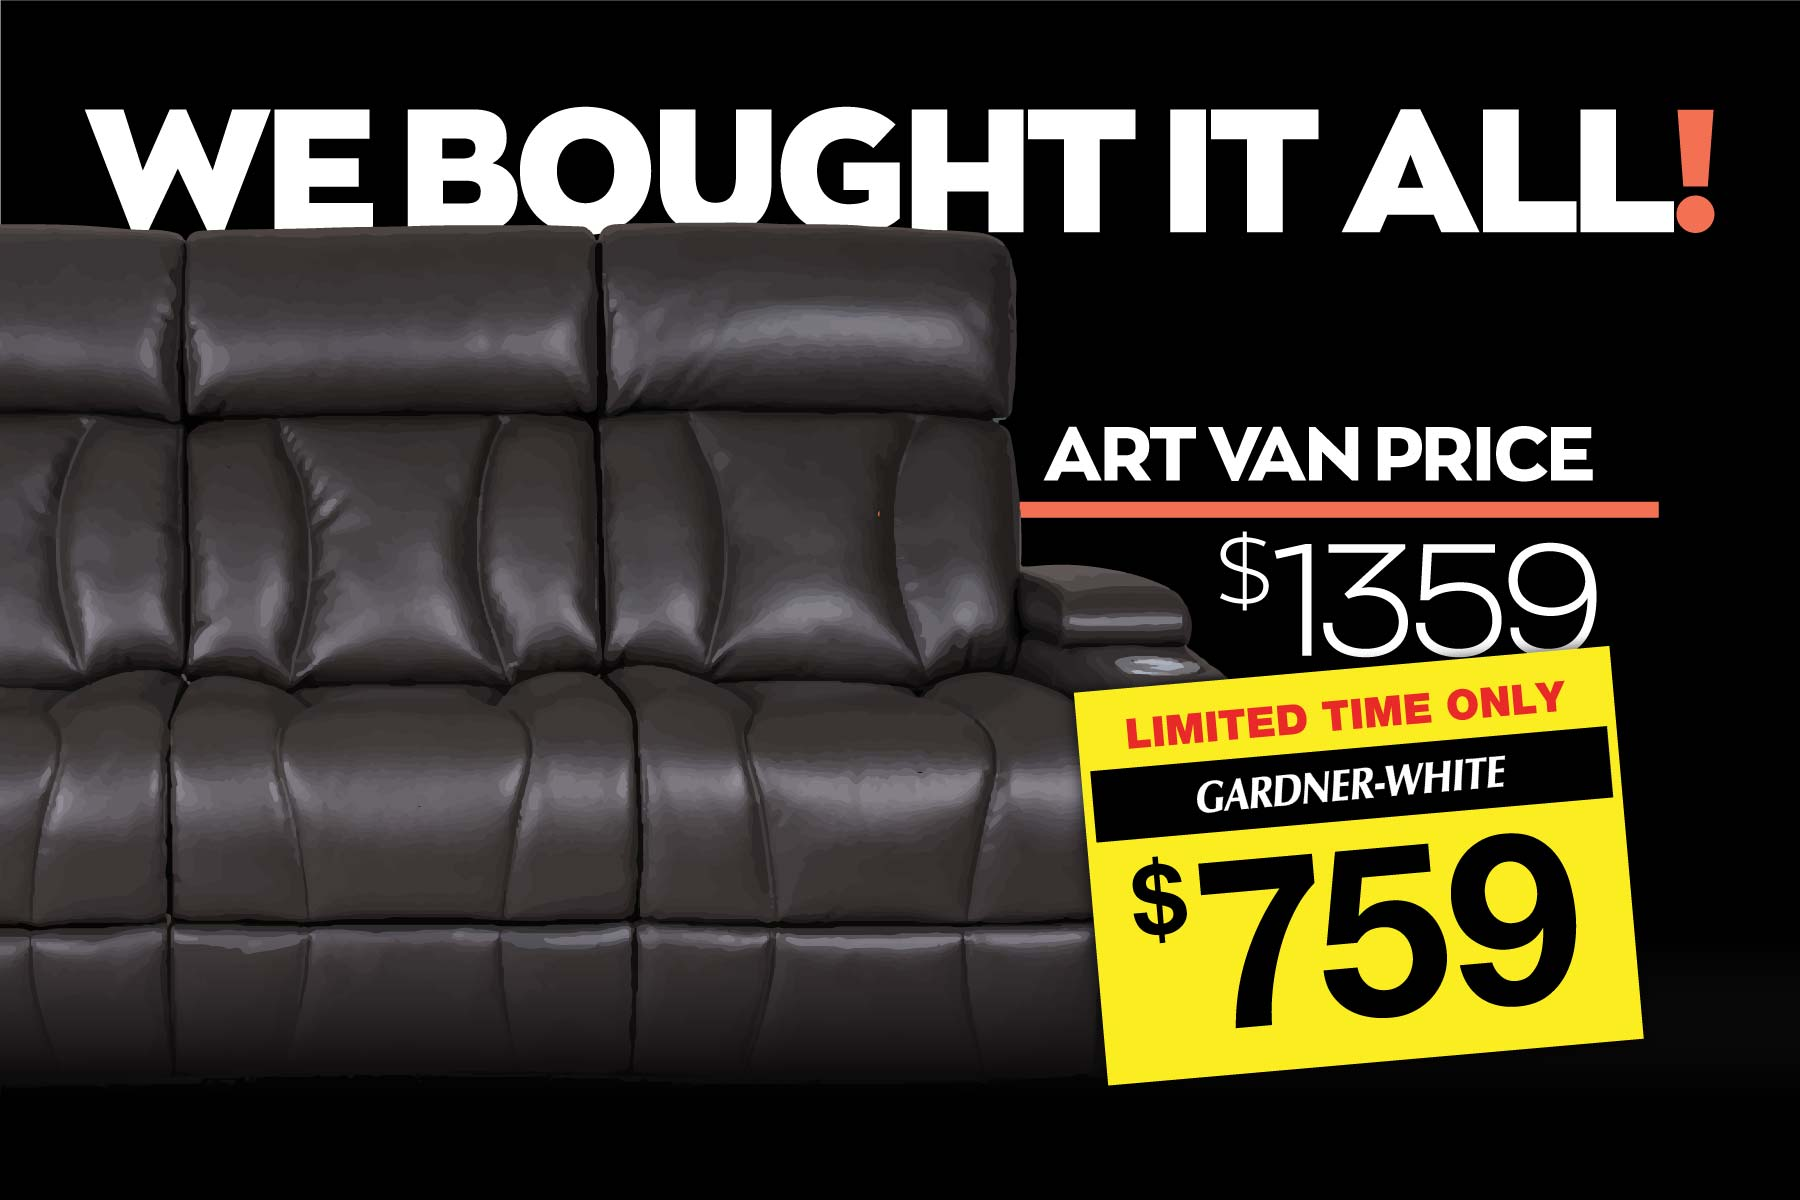 We Bought It All! Discount items from the Art Van liquidation